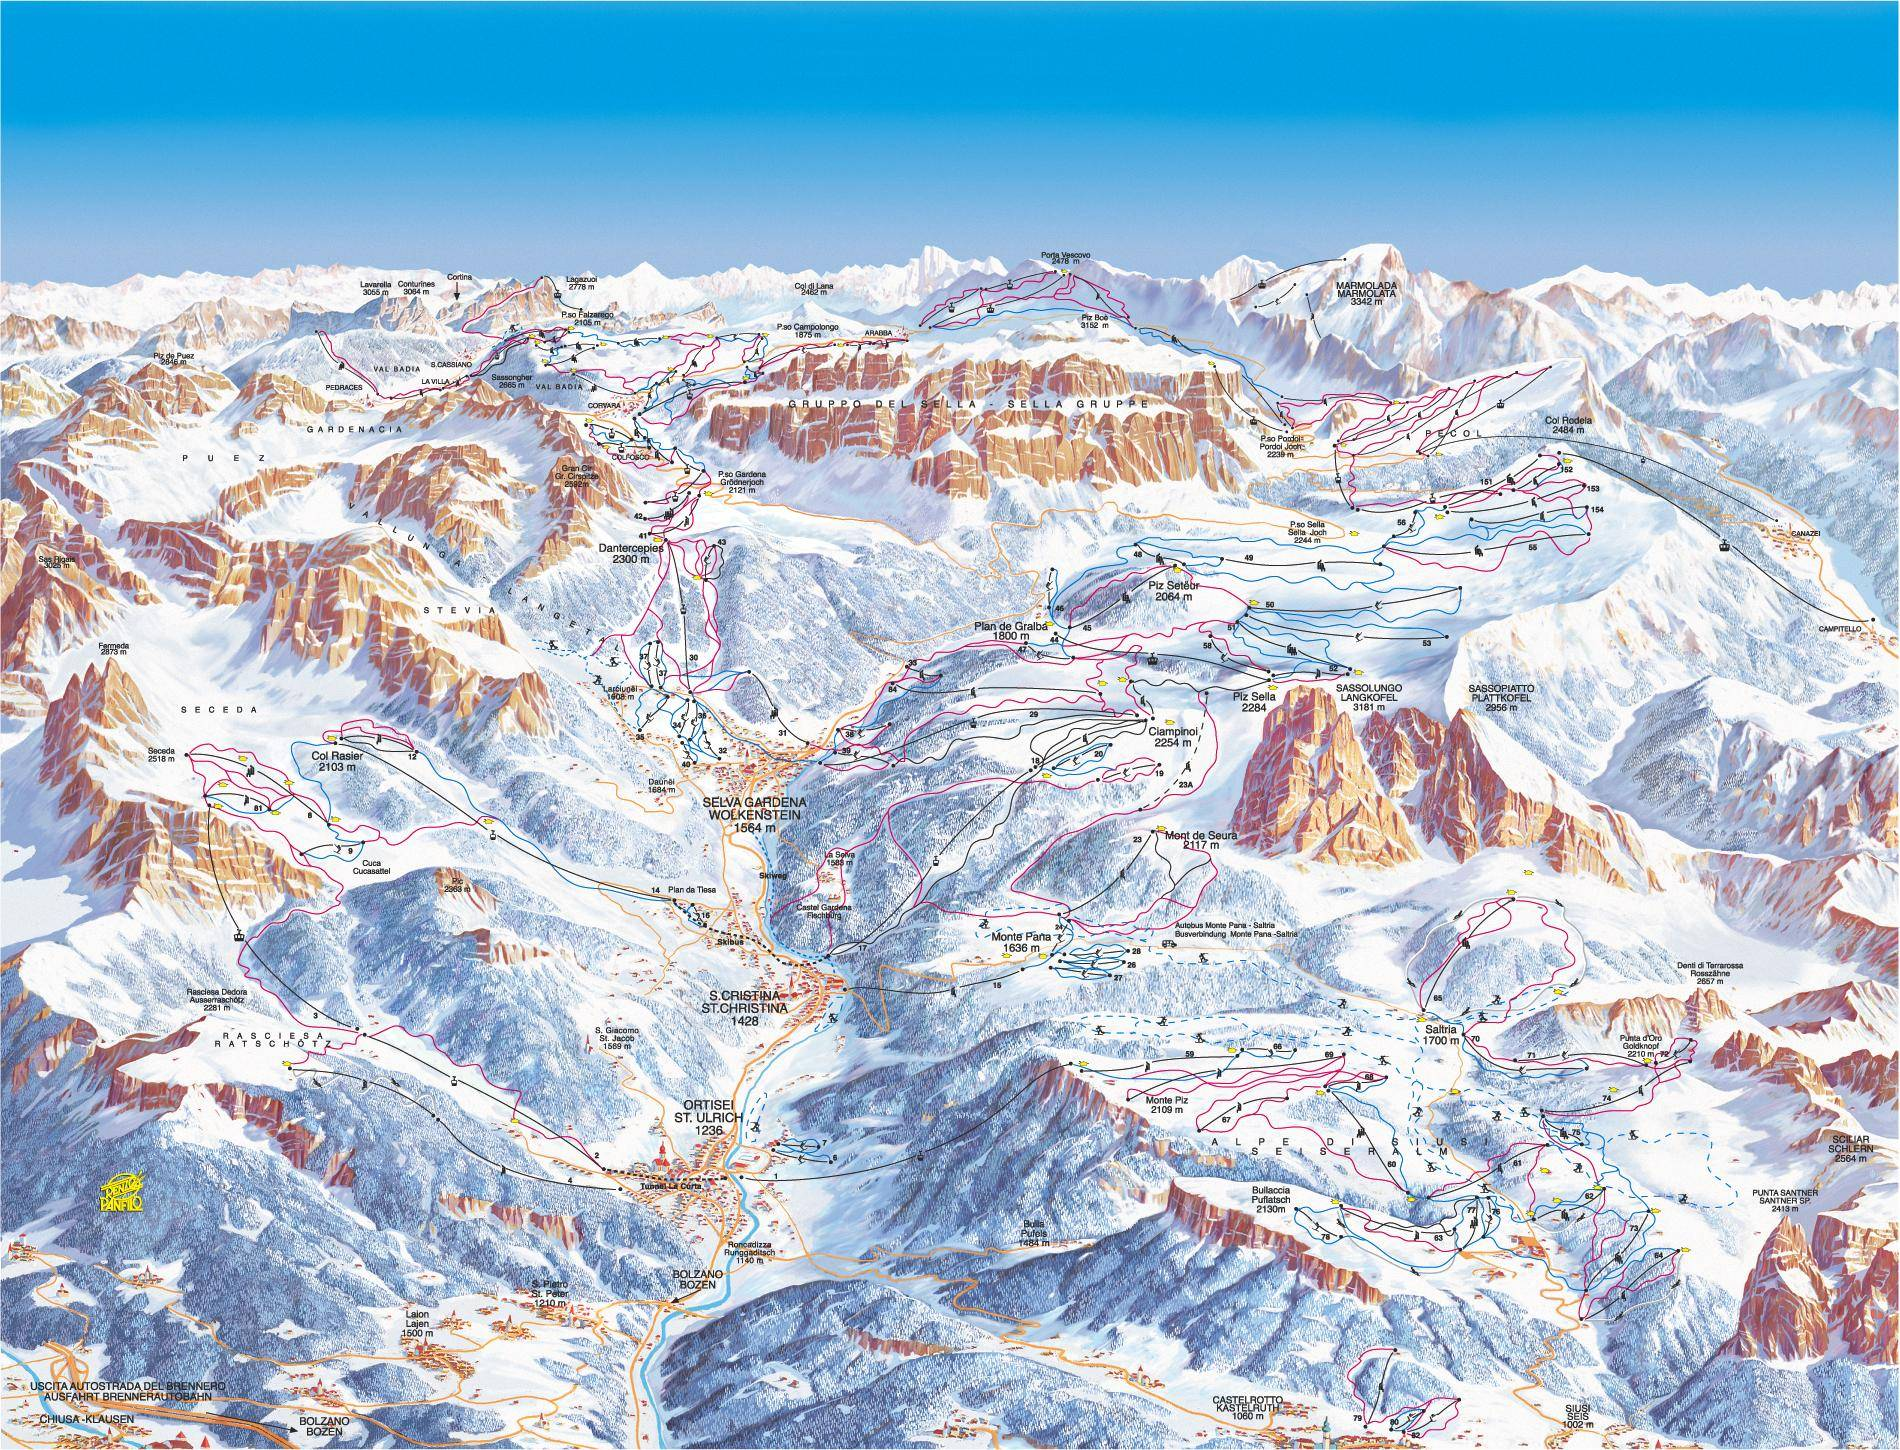 Dolomiti Superski ski map Italy Europe